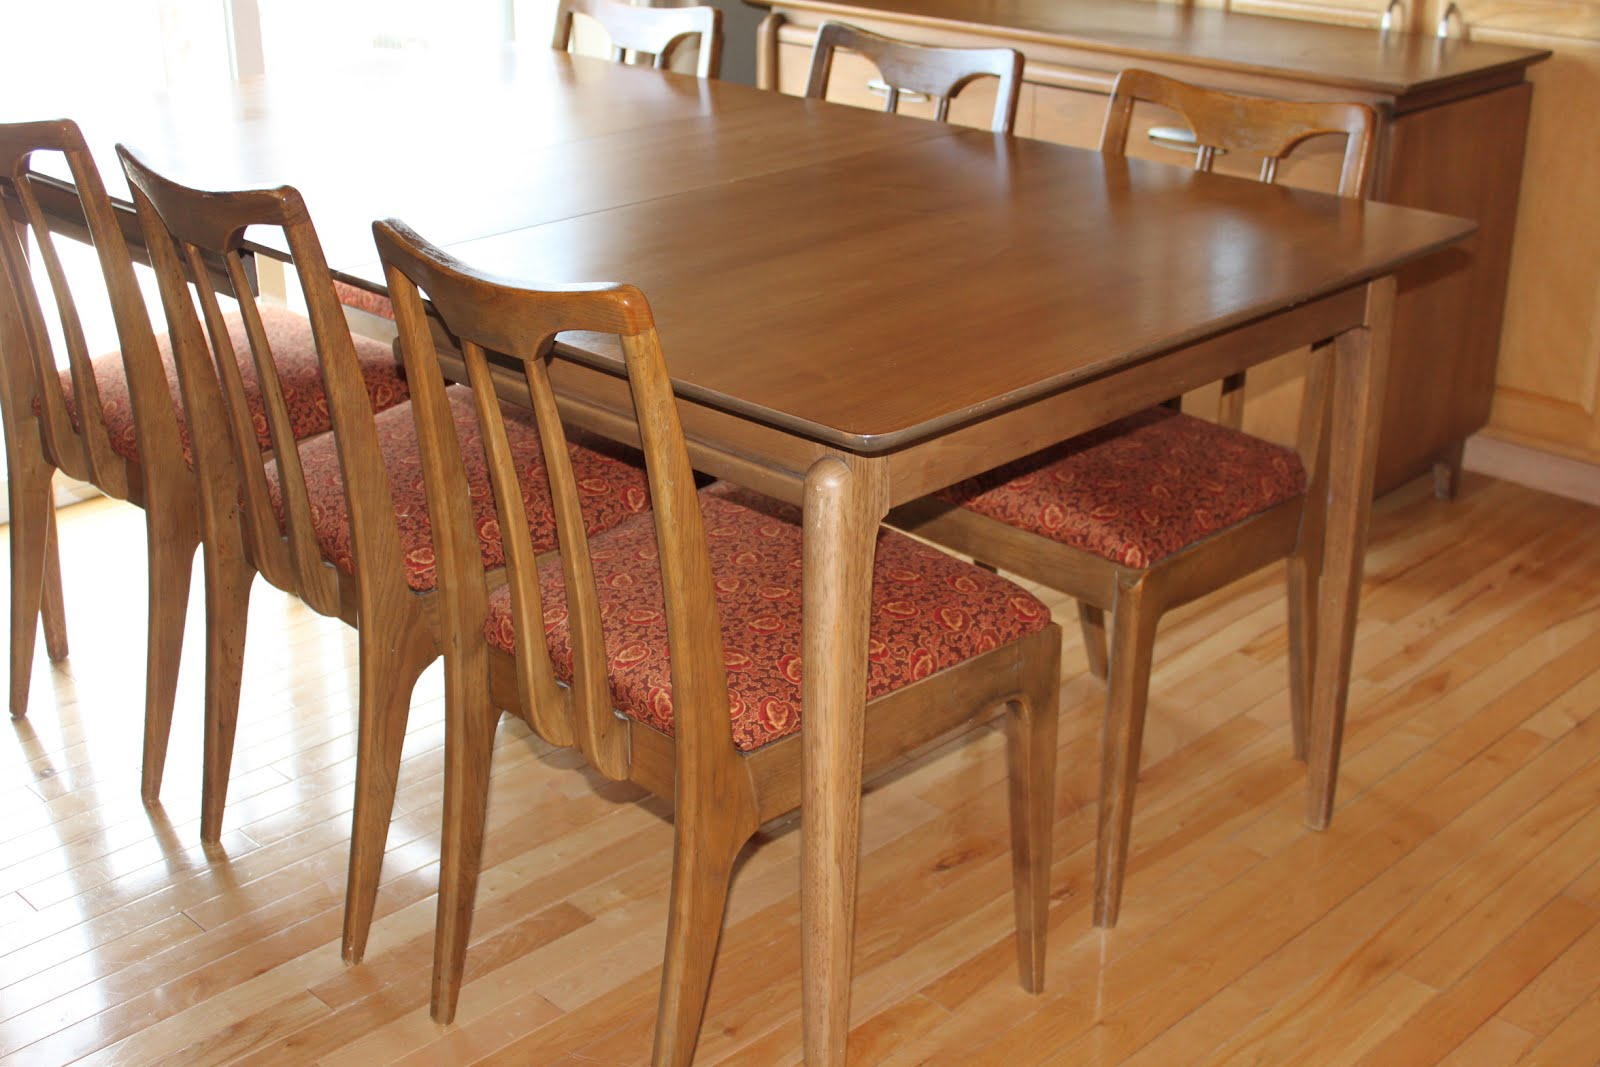 Excellent Drexel Projection Series Dining Set With Buffet Credenza $1000